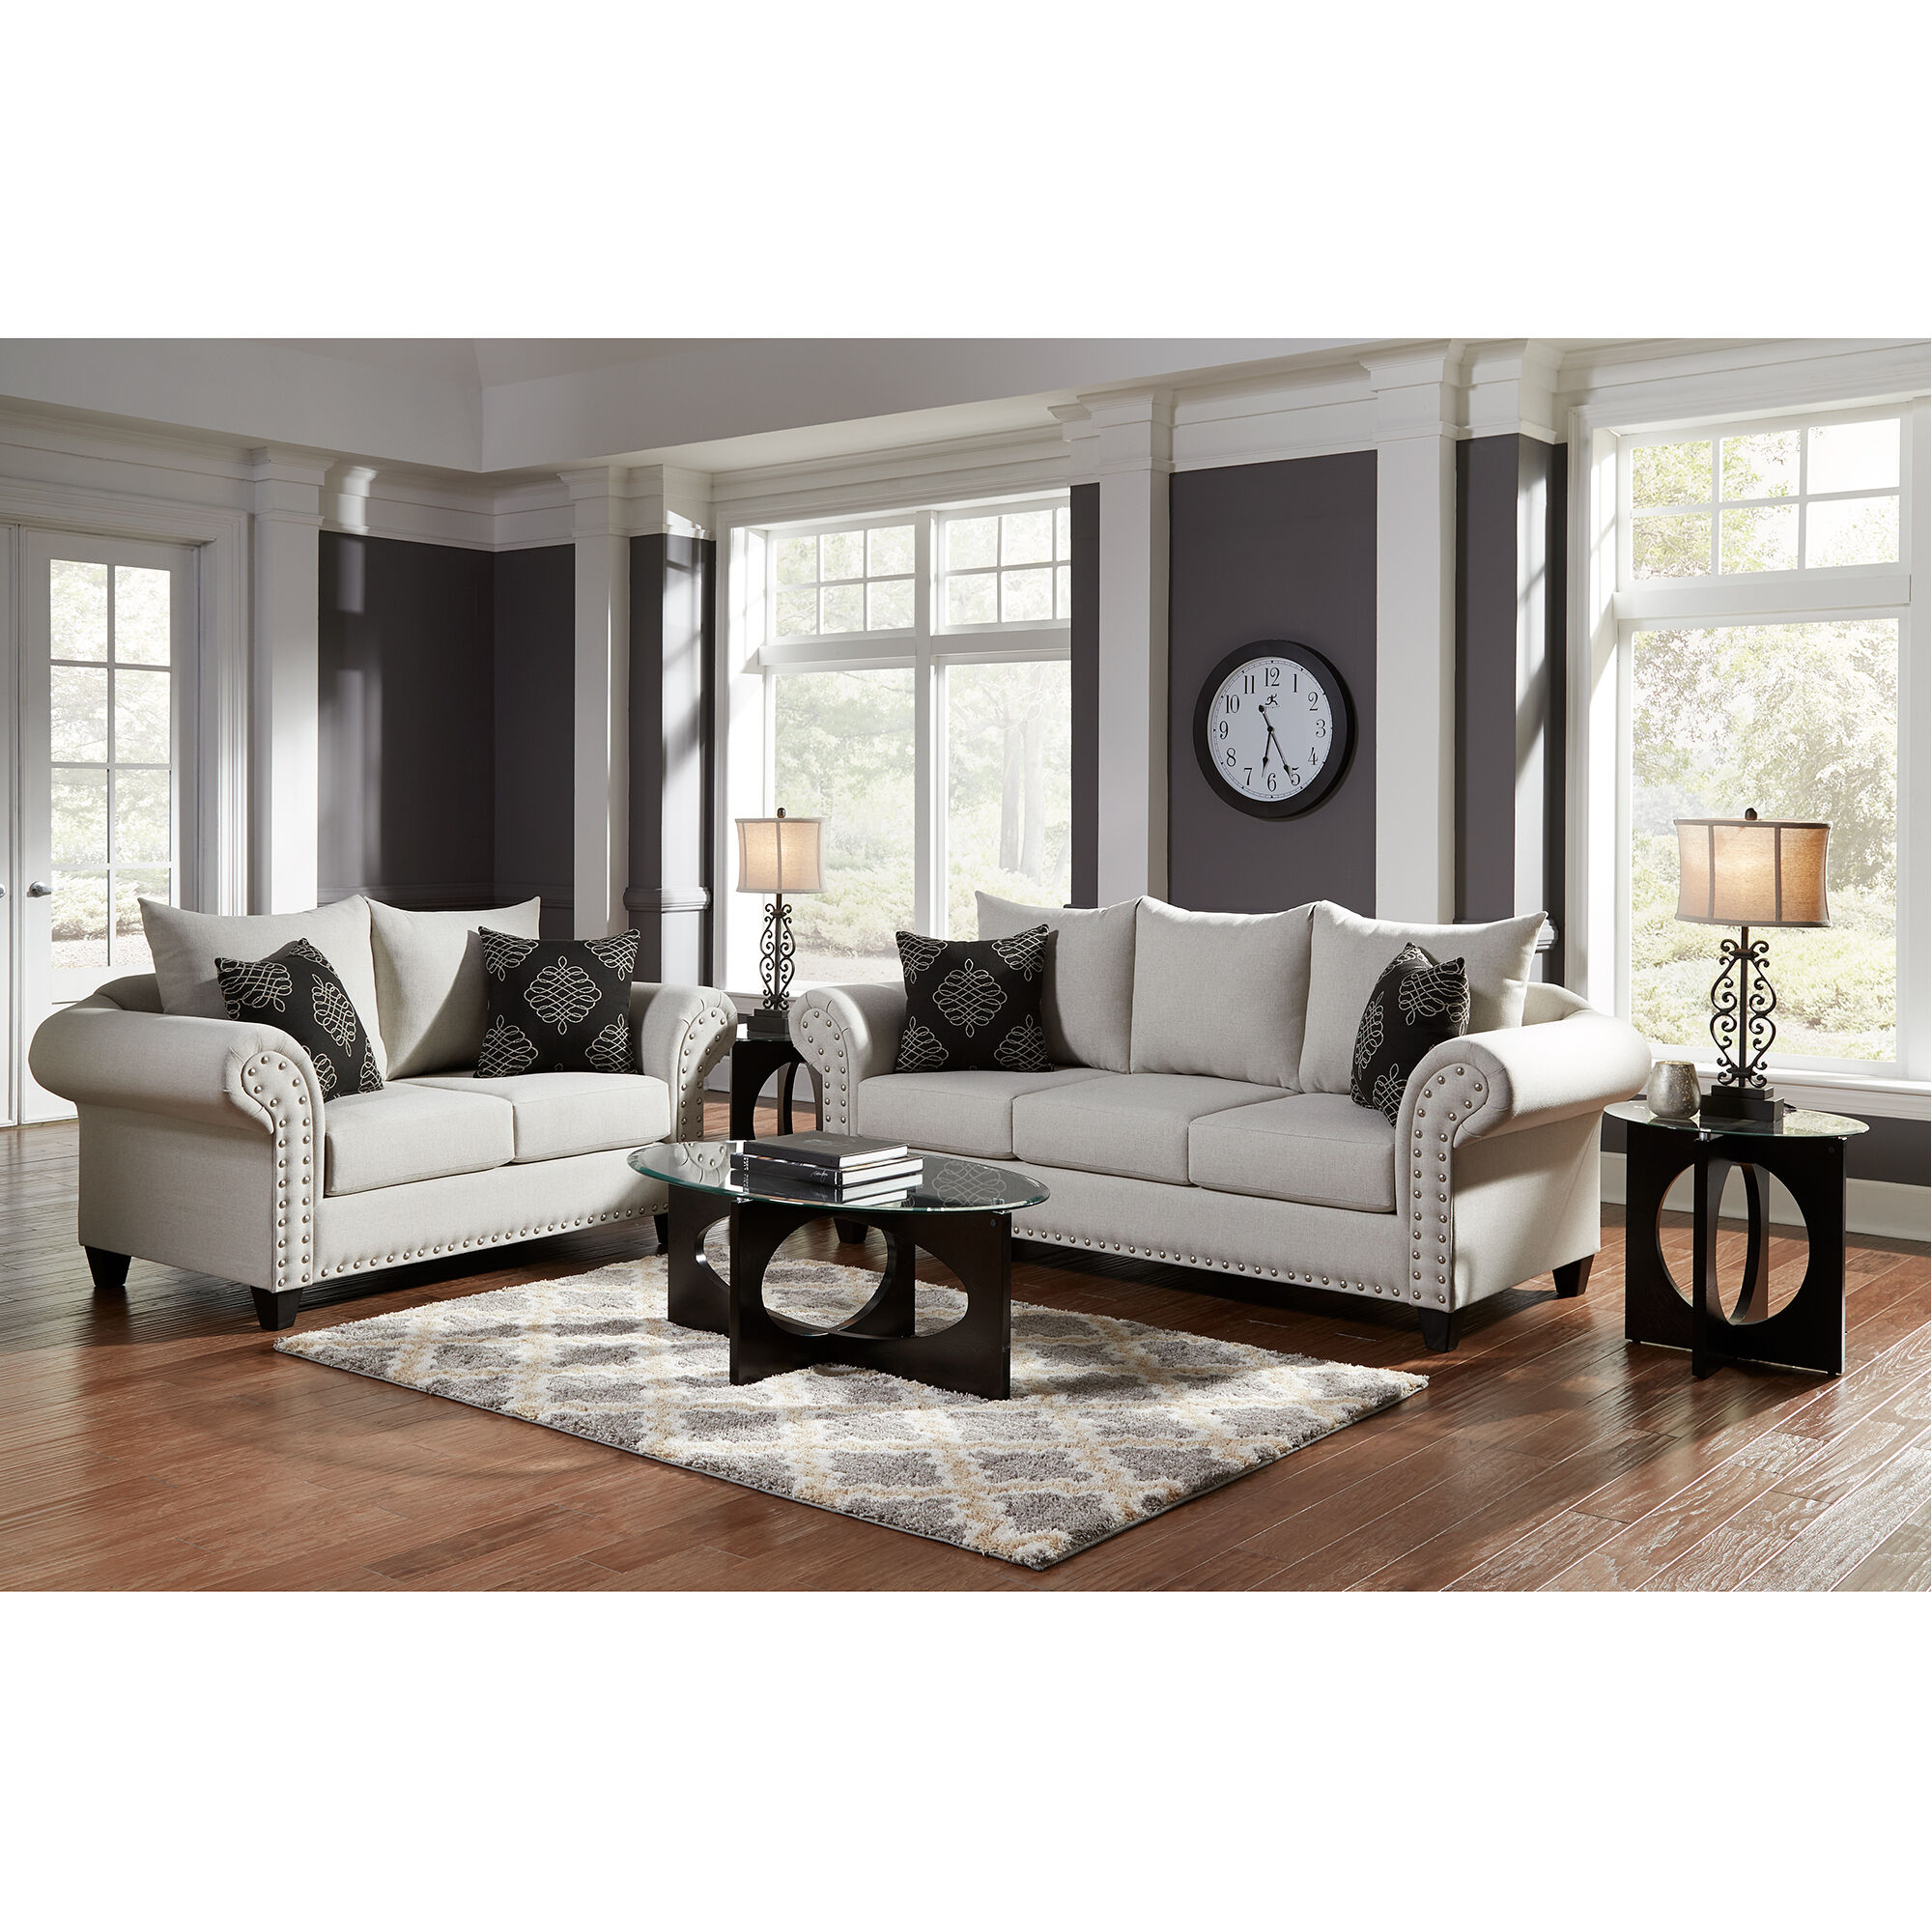 8 Piece Beverly Living Room Collection Rent to